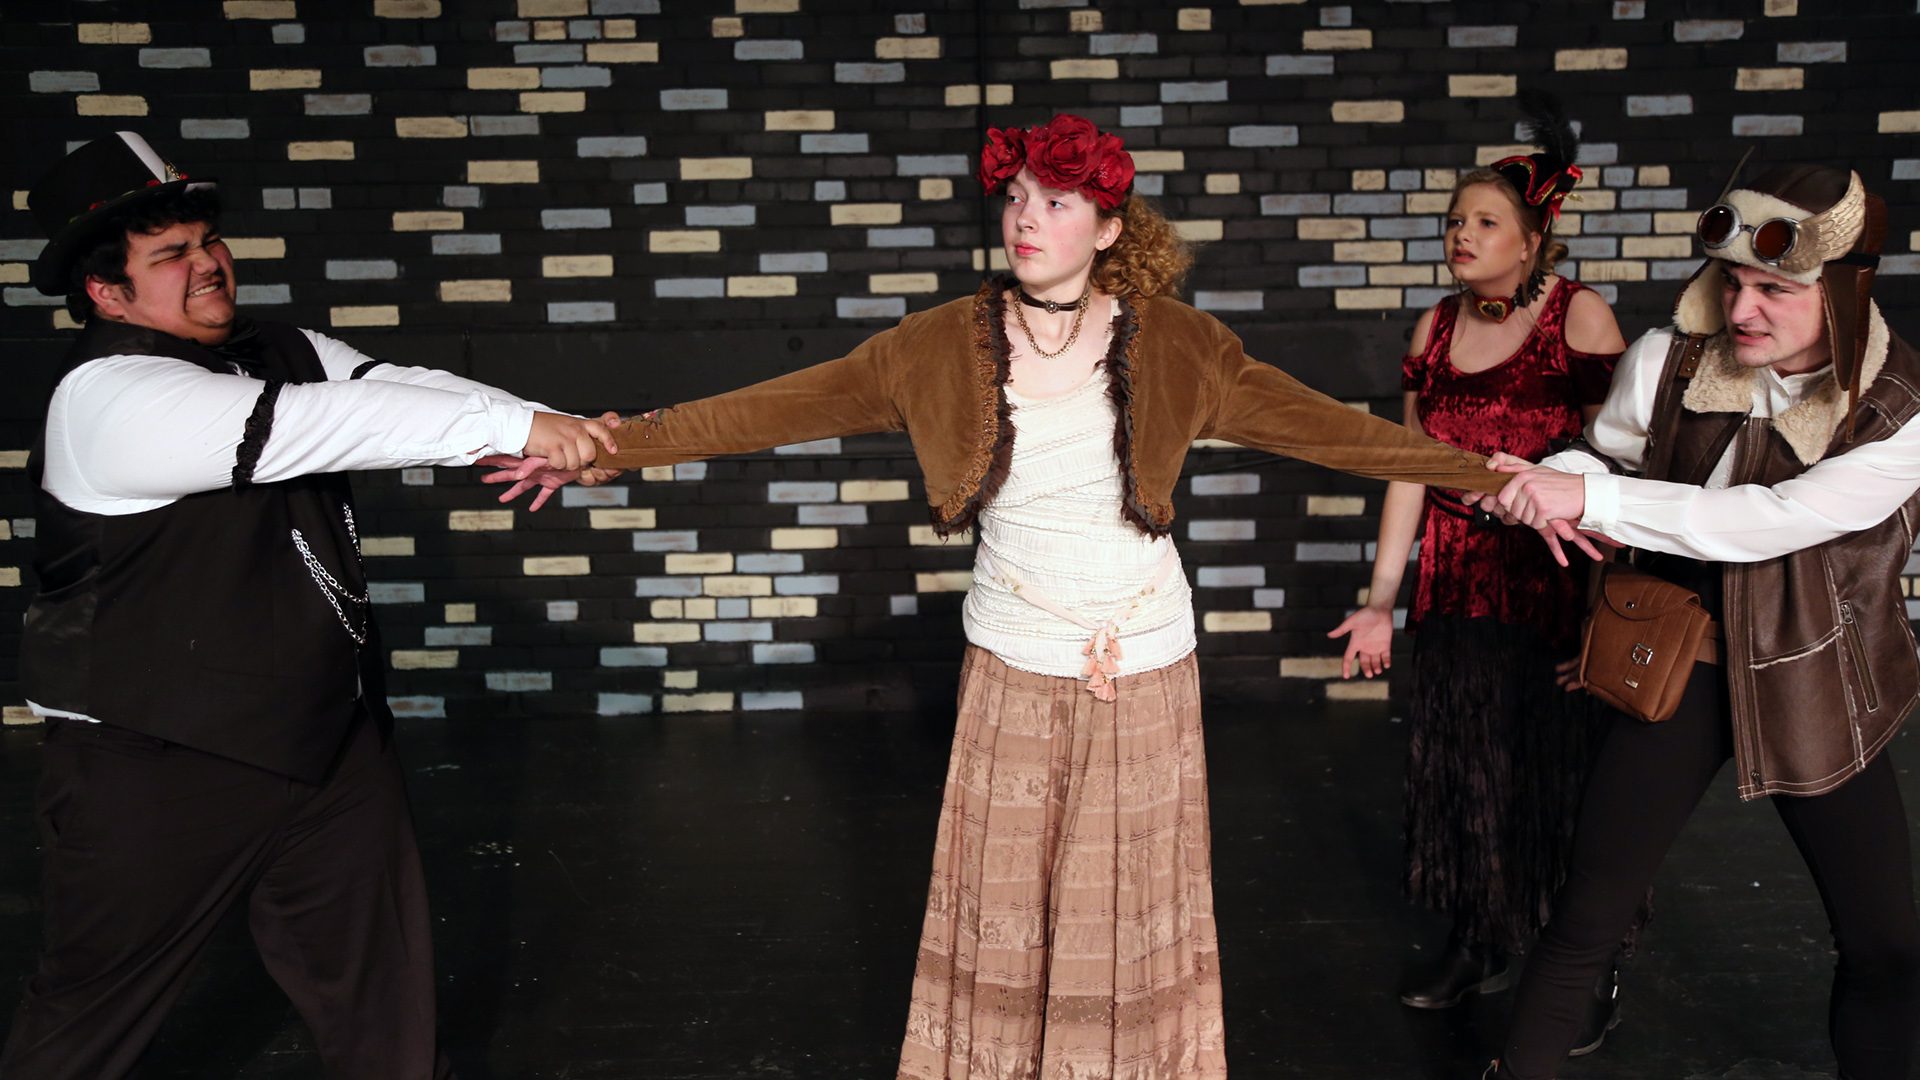 AC Conservatory students will stage steampunk version of 'Midsummer Night's Dream'